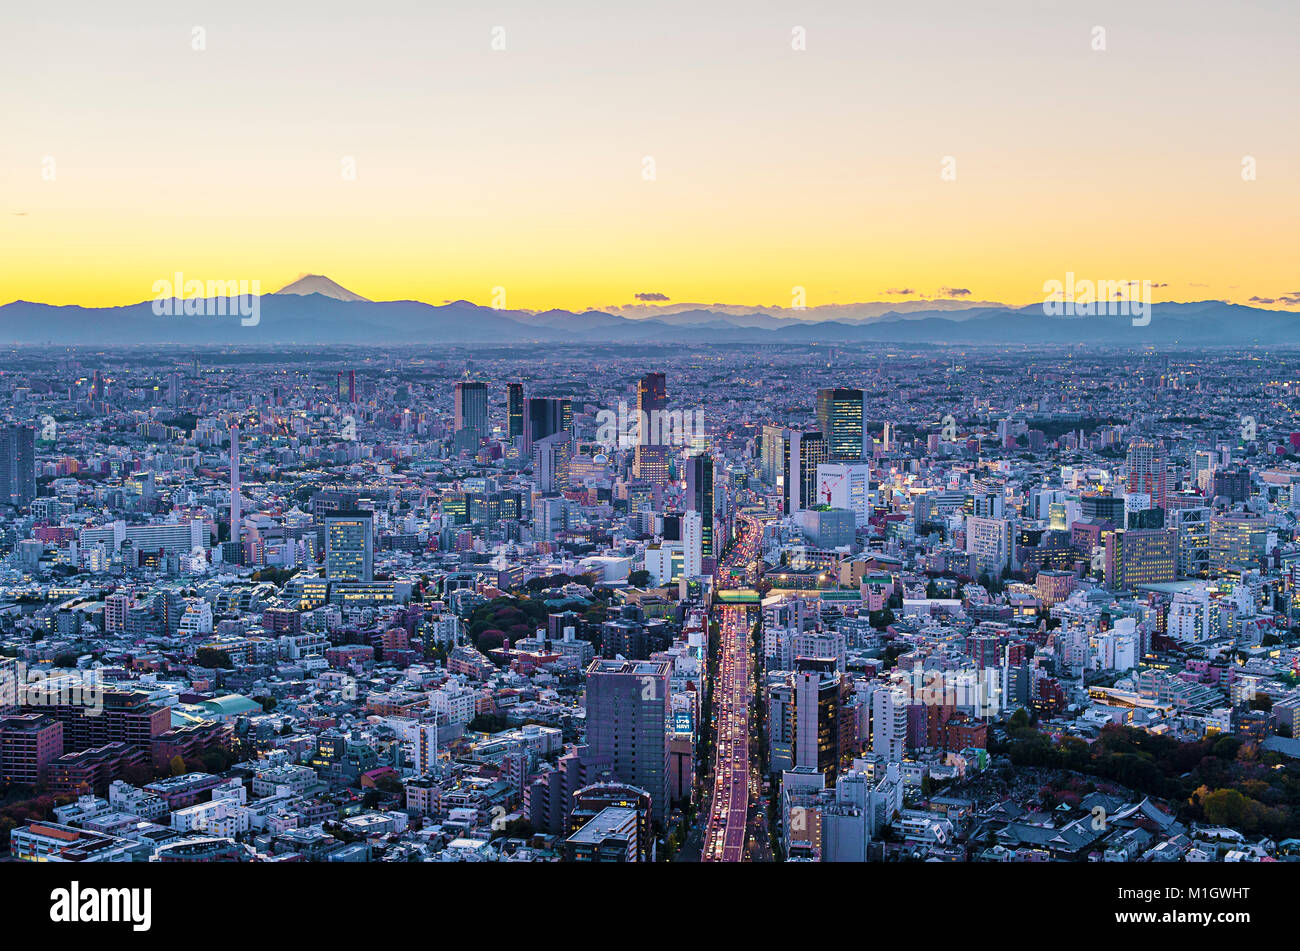 Aerial Cityscape View Tokyo Japan Stock Photo